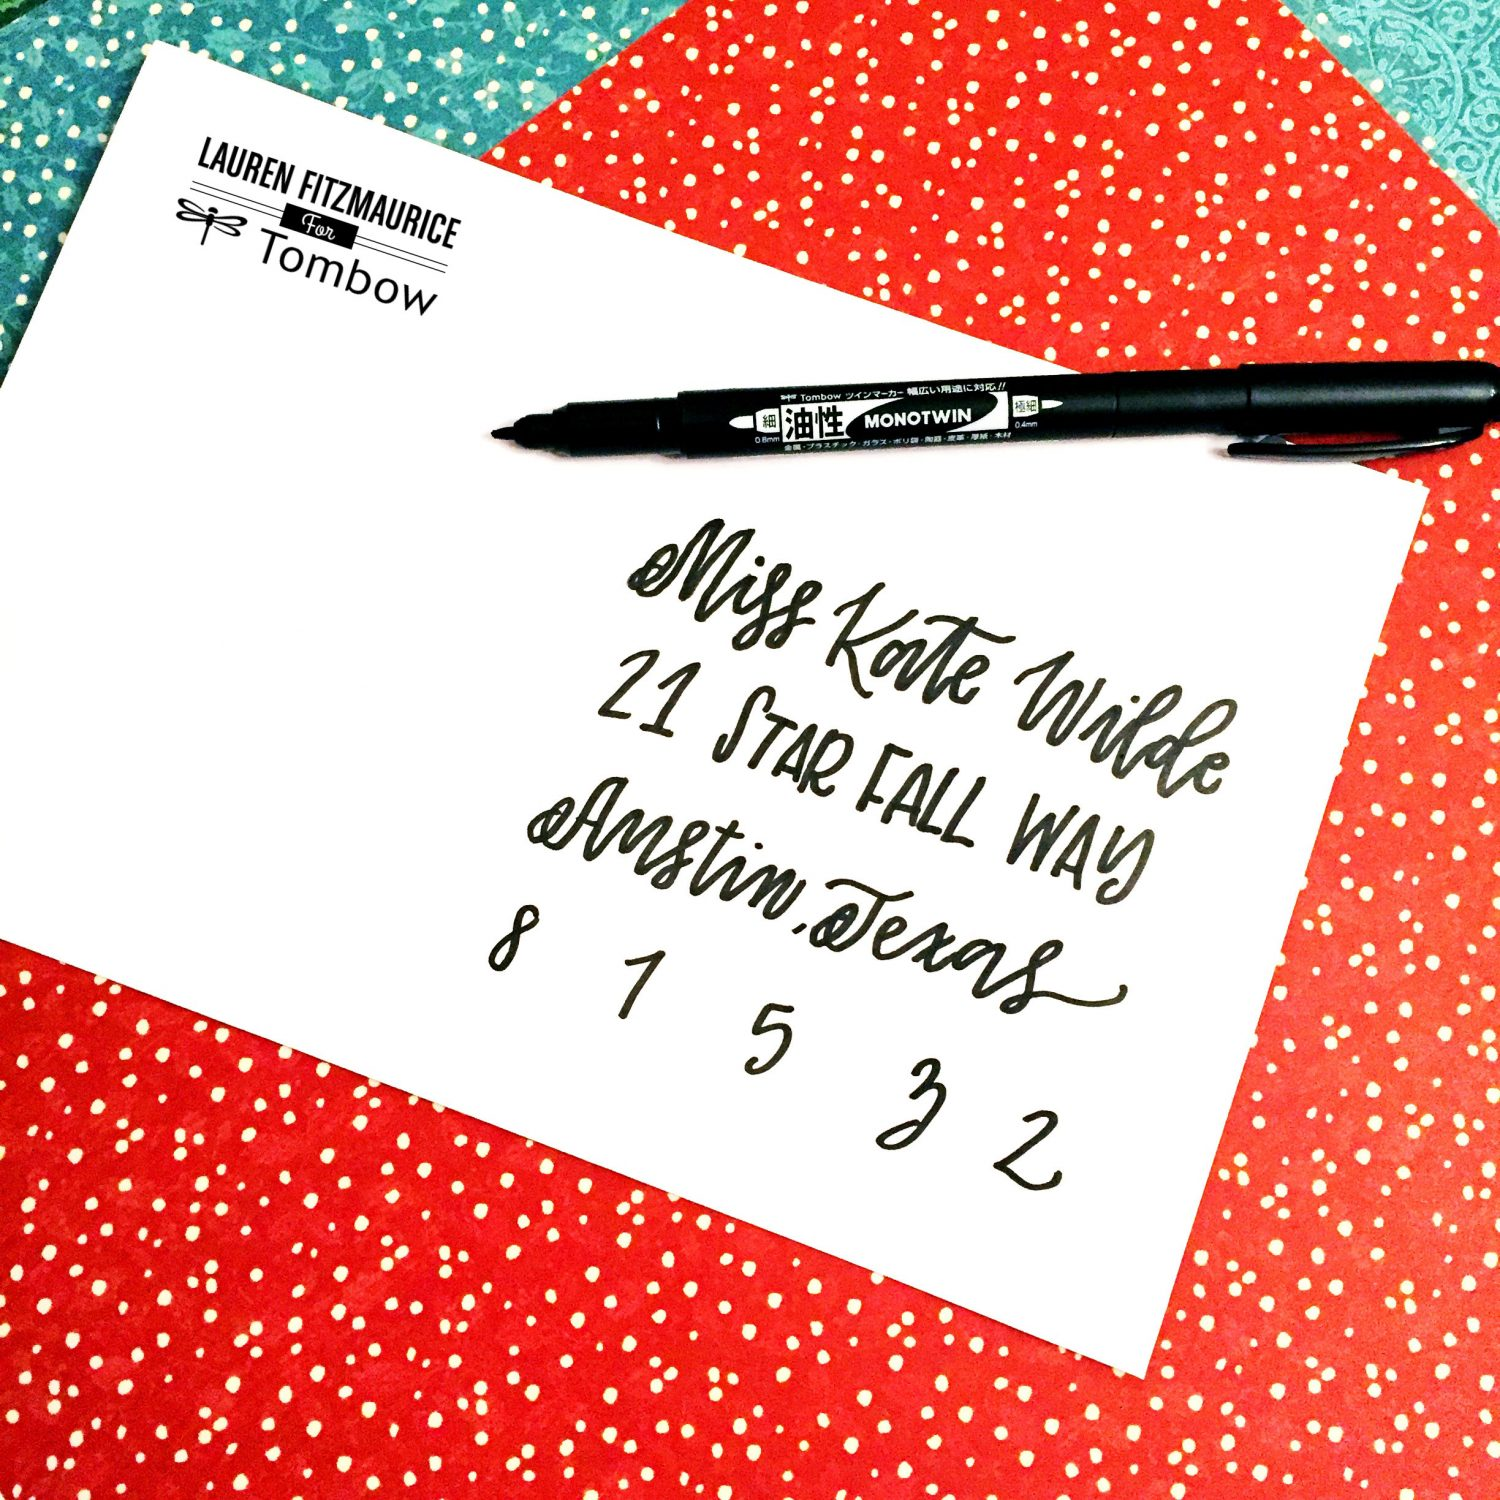 5 holiday envelope hacks by lauren fitzmaurice tombow usa blog holiday envelope hacks thecheapjerseys Gallery